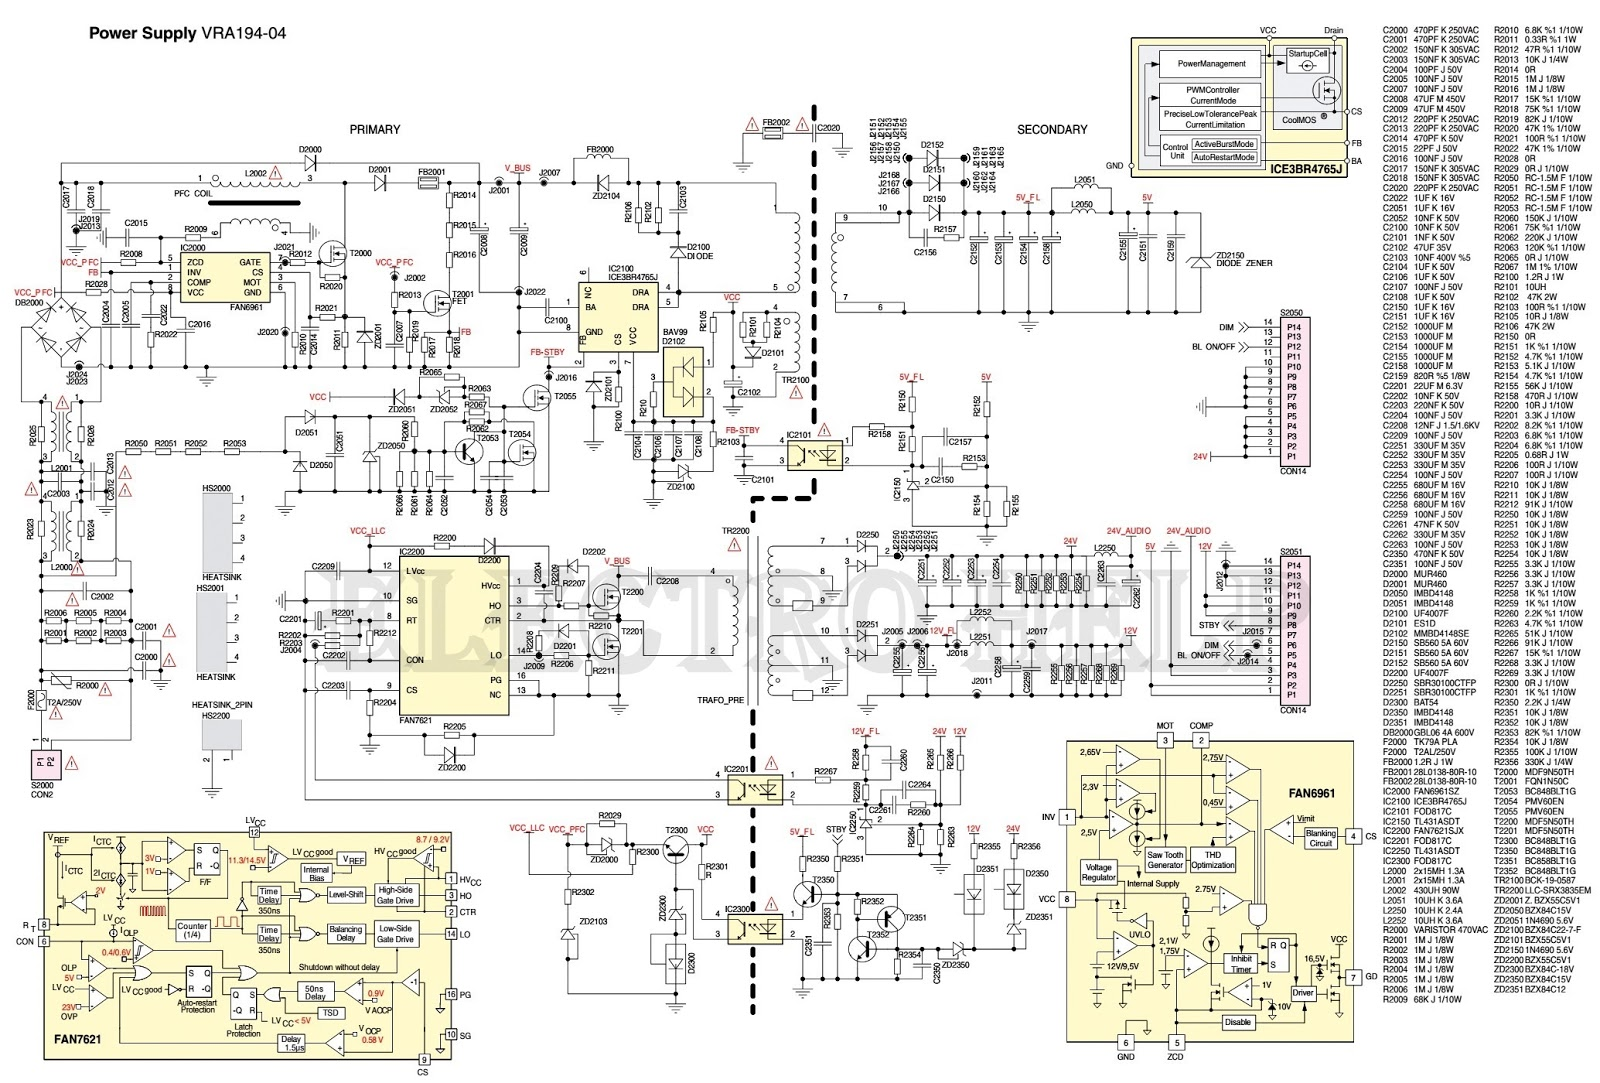 Lg Tv Pcb Diagram Periodic Diagrams Science Figure 2 Block Of An Lcd Power Supply Grundig Vra194 04 Smps Circuit